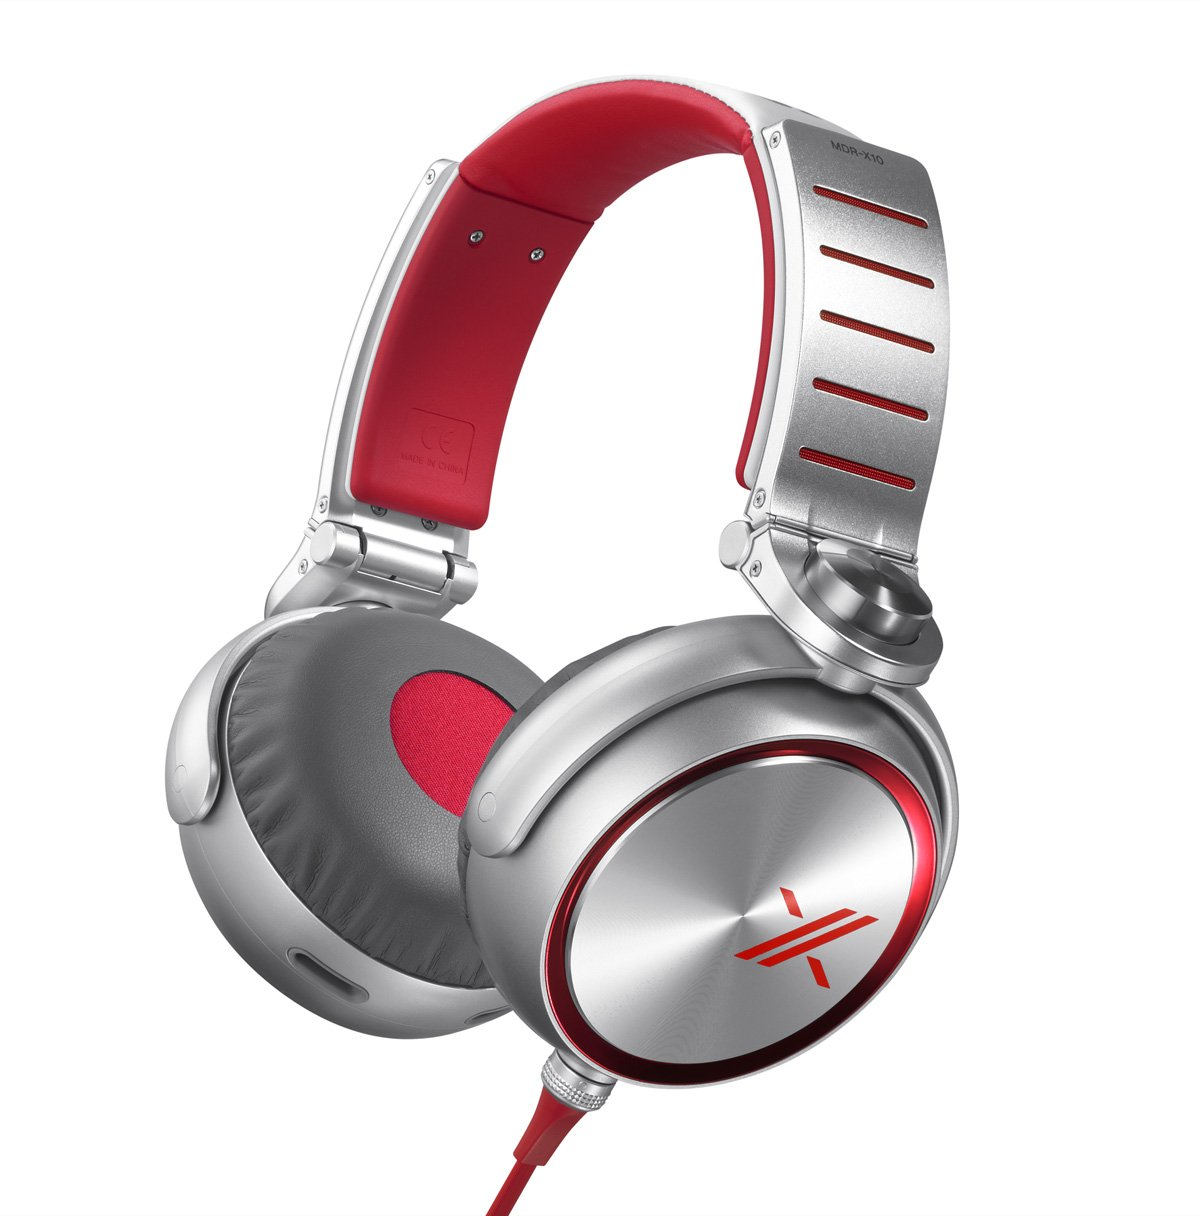 Simon Cowell X Headphones Sony MDR-X10/RED with 50mm Diaphragms $99.00